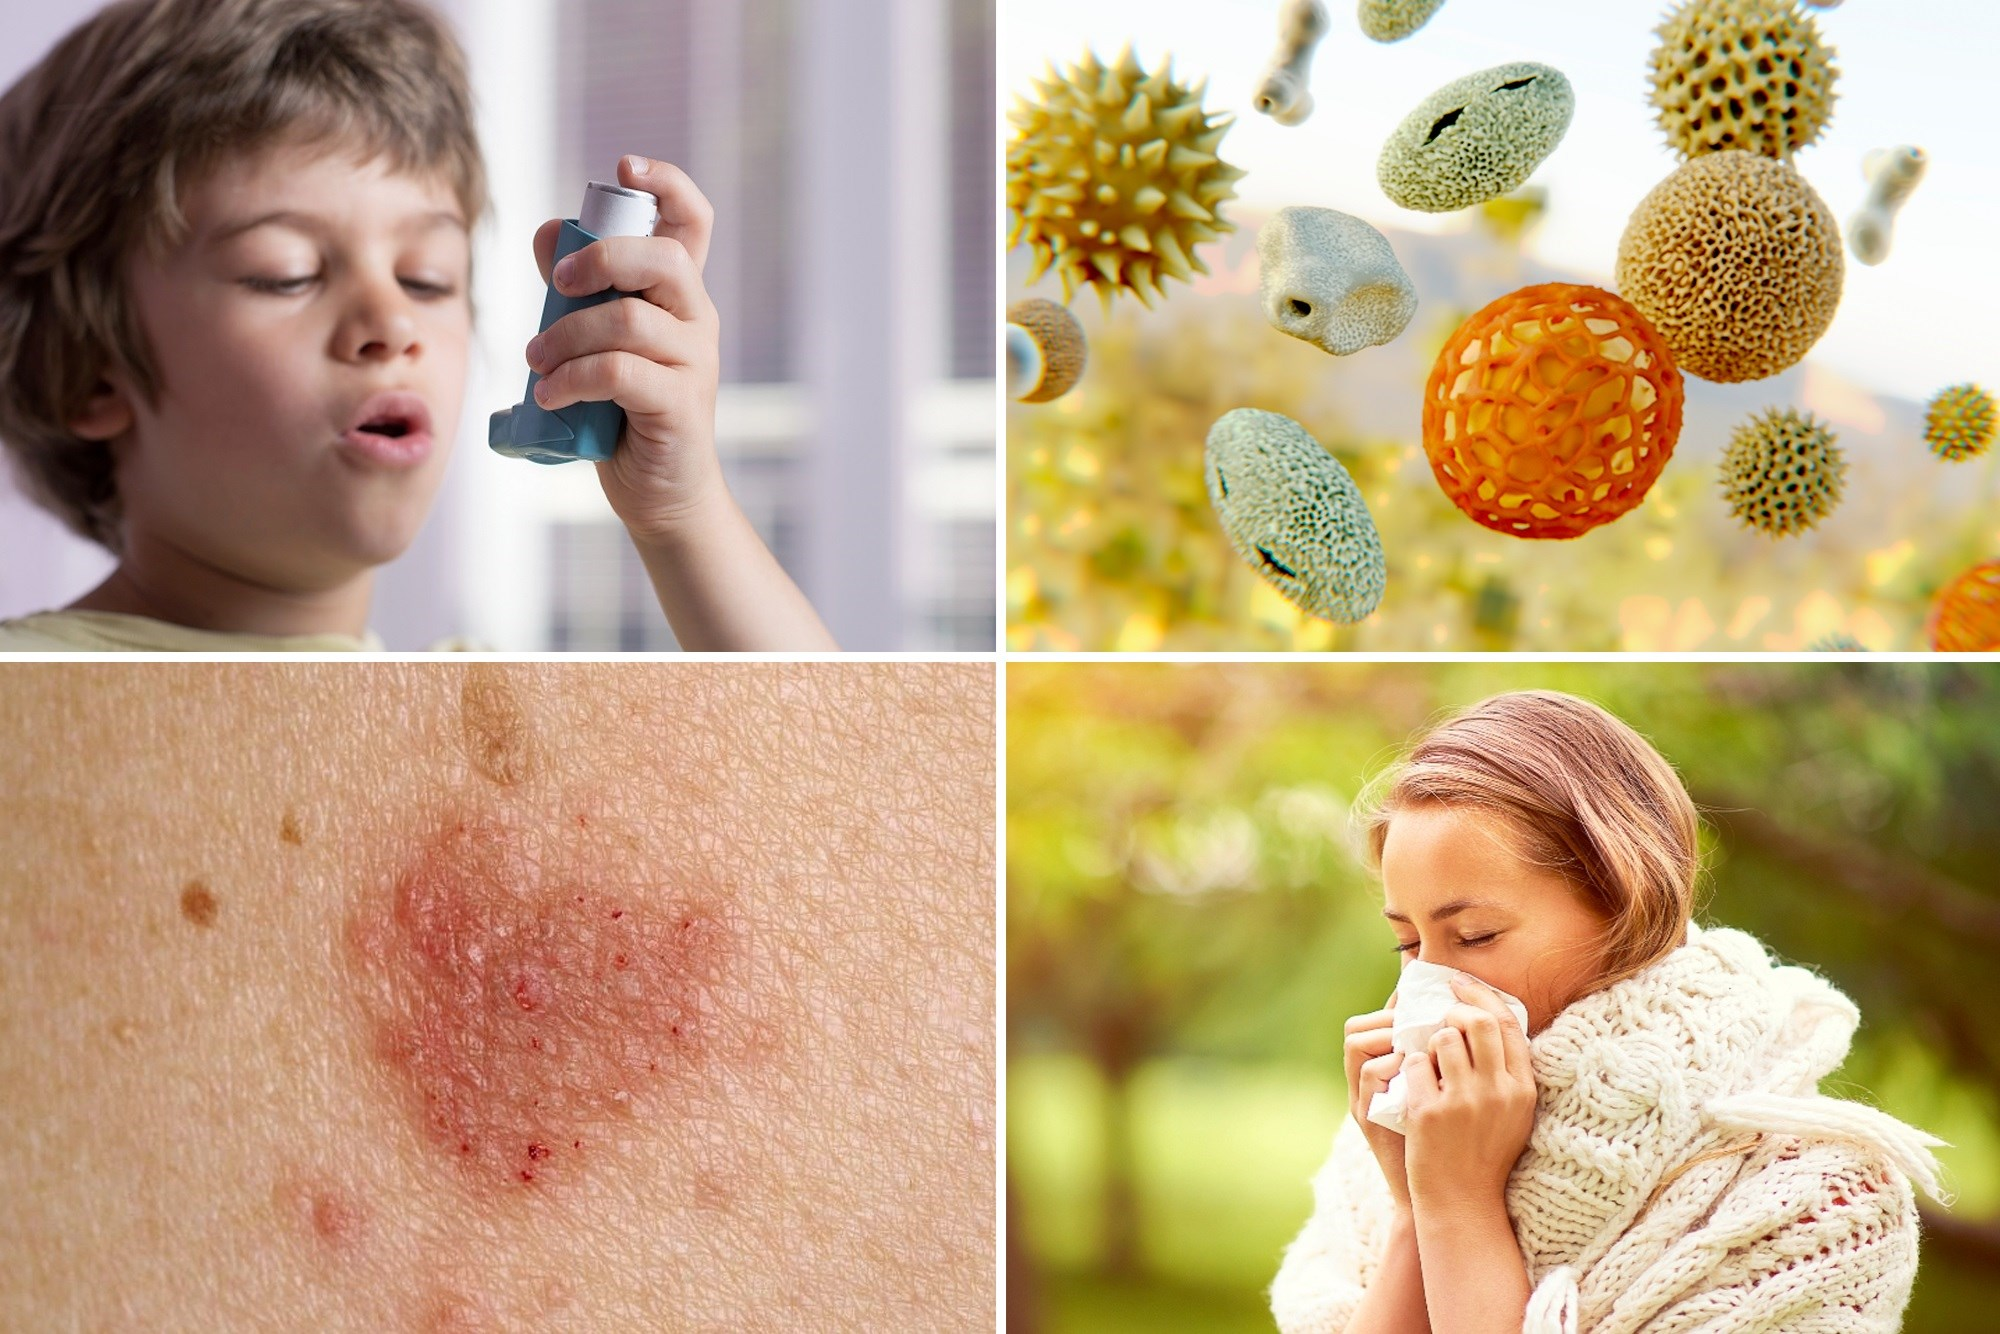 The relationship between eczema and asthma demonstrated significance only up to age 11 years, but the relationship between hay fever and asthma grew stronger in adolescence and early adulthood.